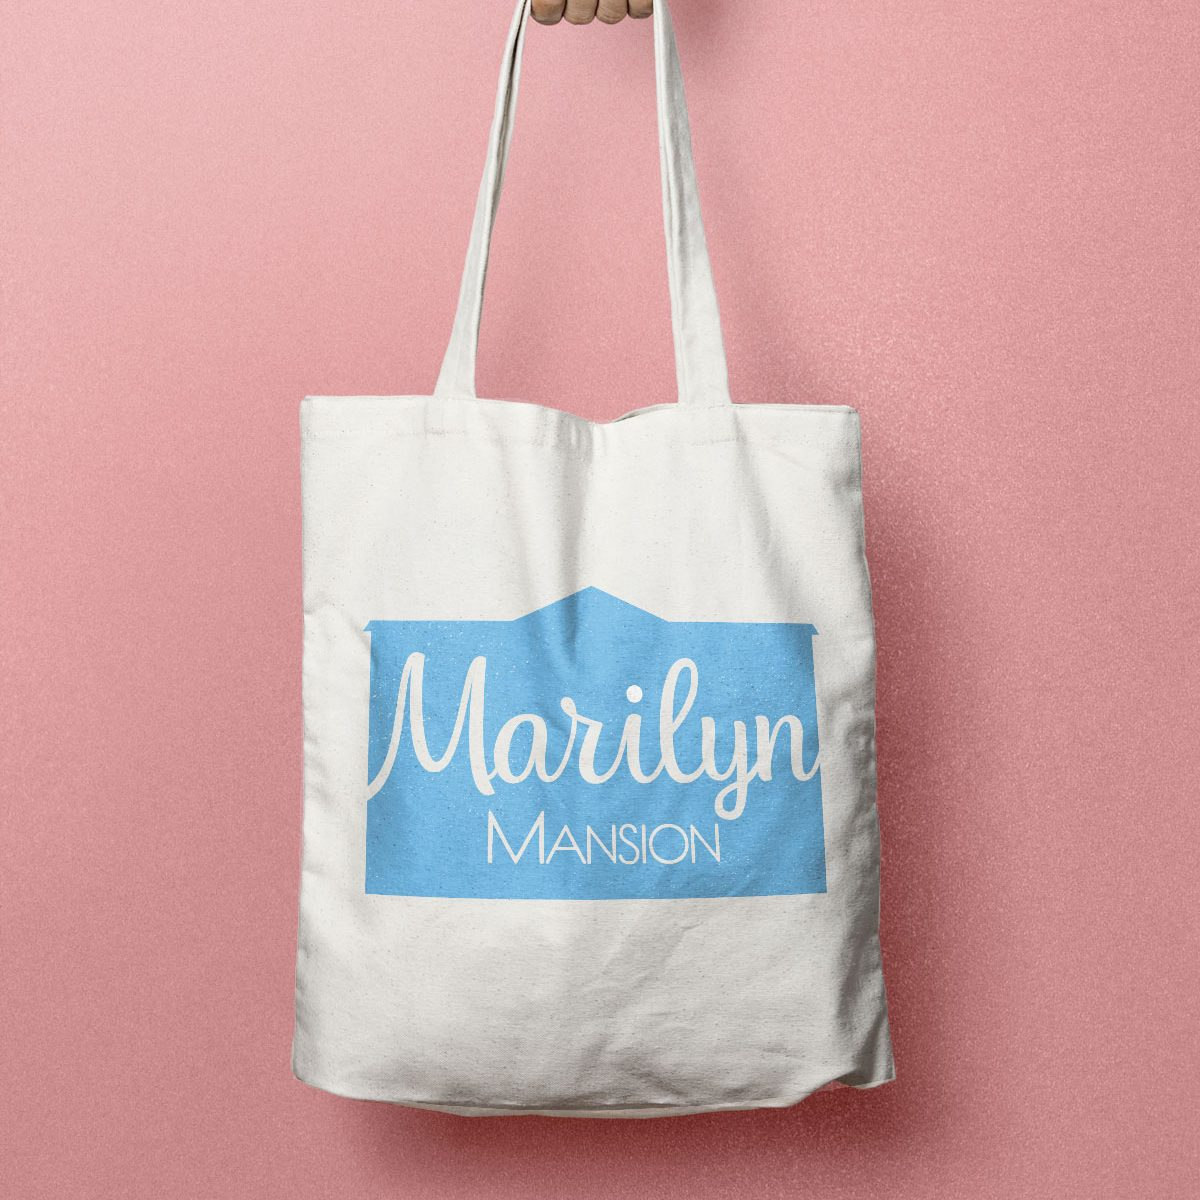 MarilynMansion_Canvas-Tote-Bag_1-sml5